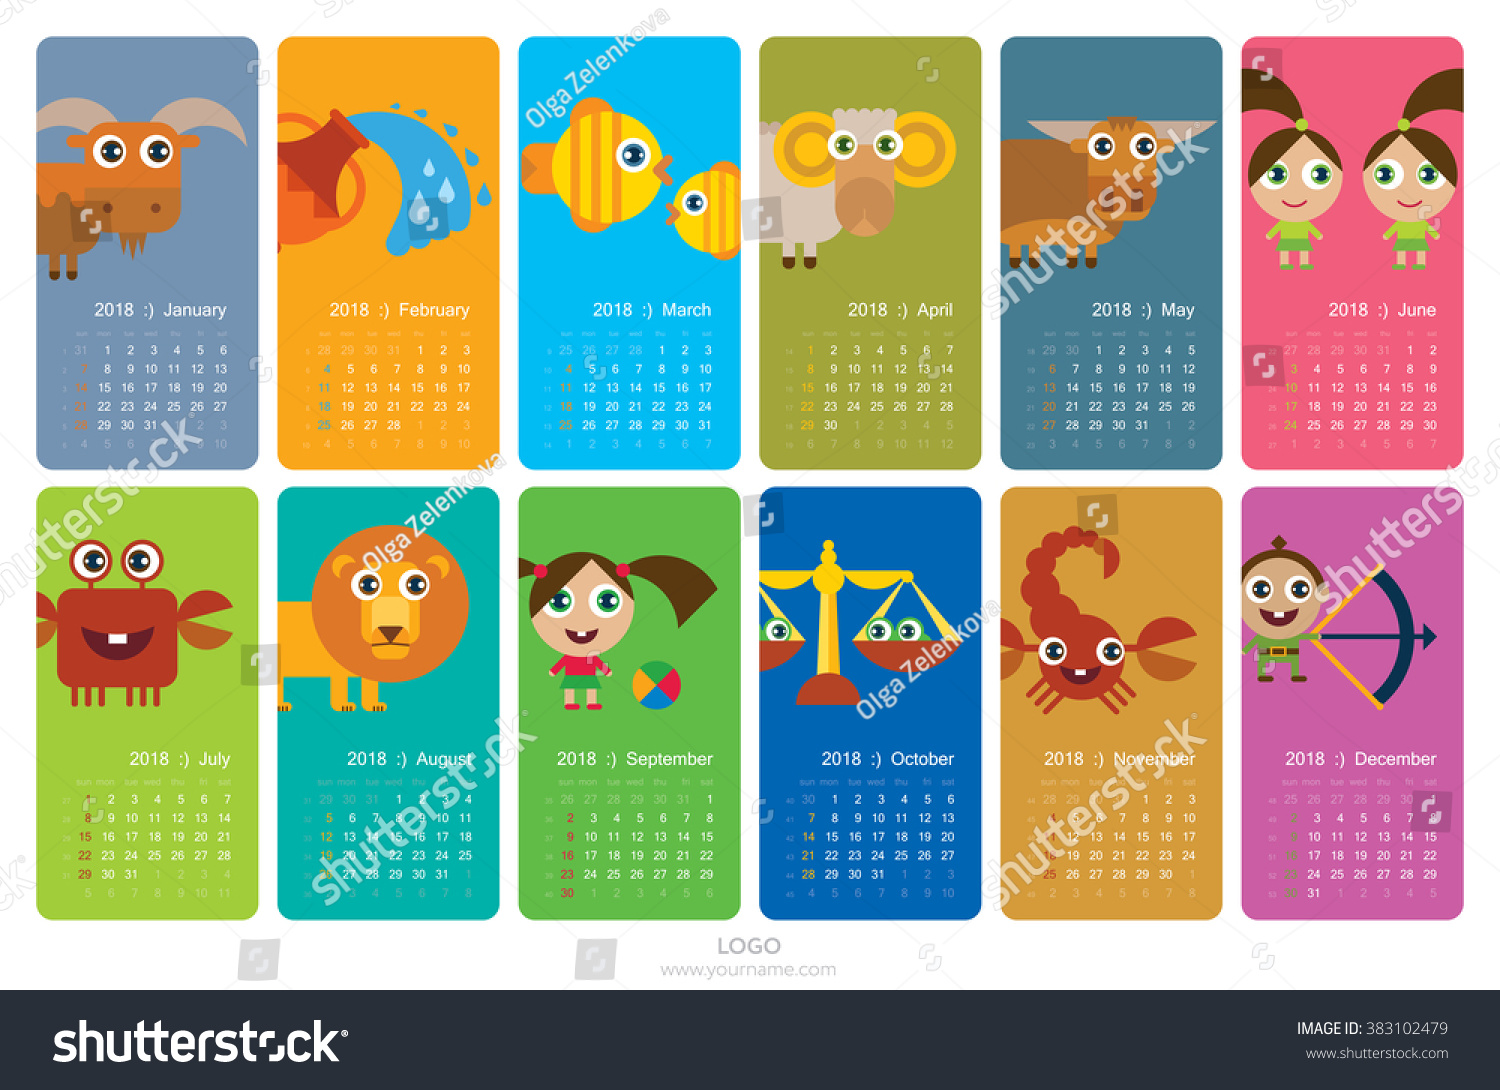 Calendar Design Zodiac : Creative calendar wiith horoscope signs stock vector